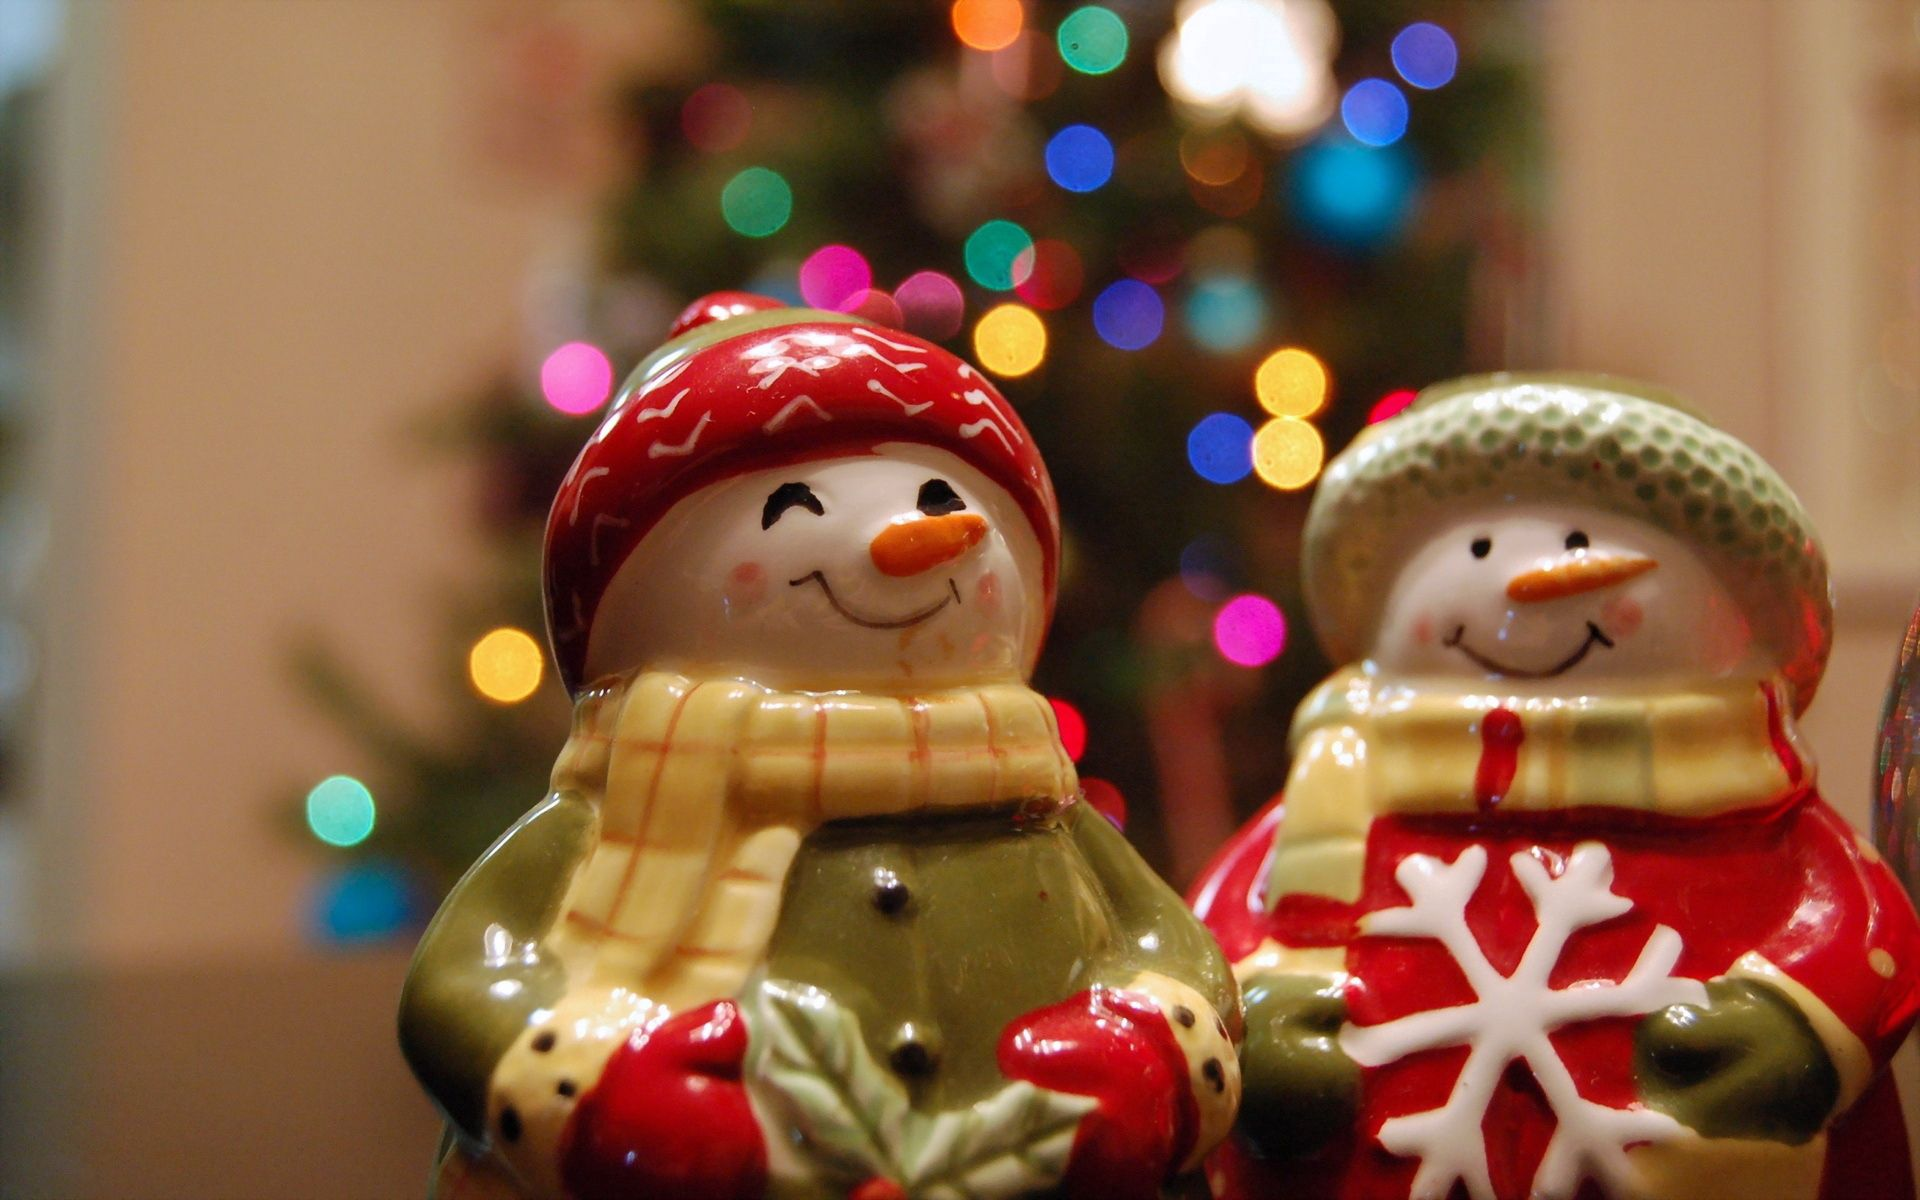 156585 Screensavers and Wallpapers Toys for phone. Download Toys, Snowman, Miscellanea, Miscellaneous, Holiday pictures for free